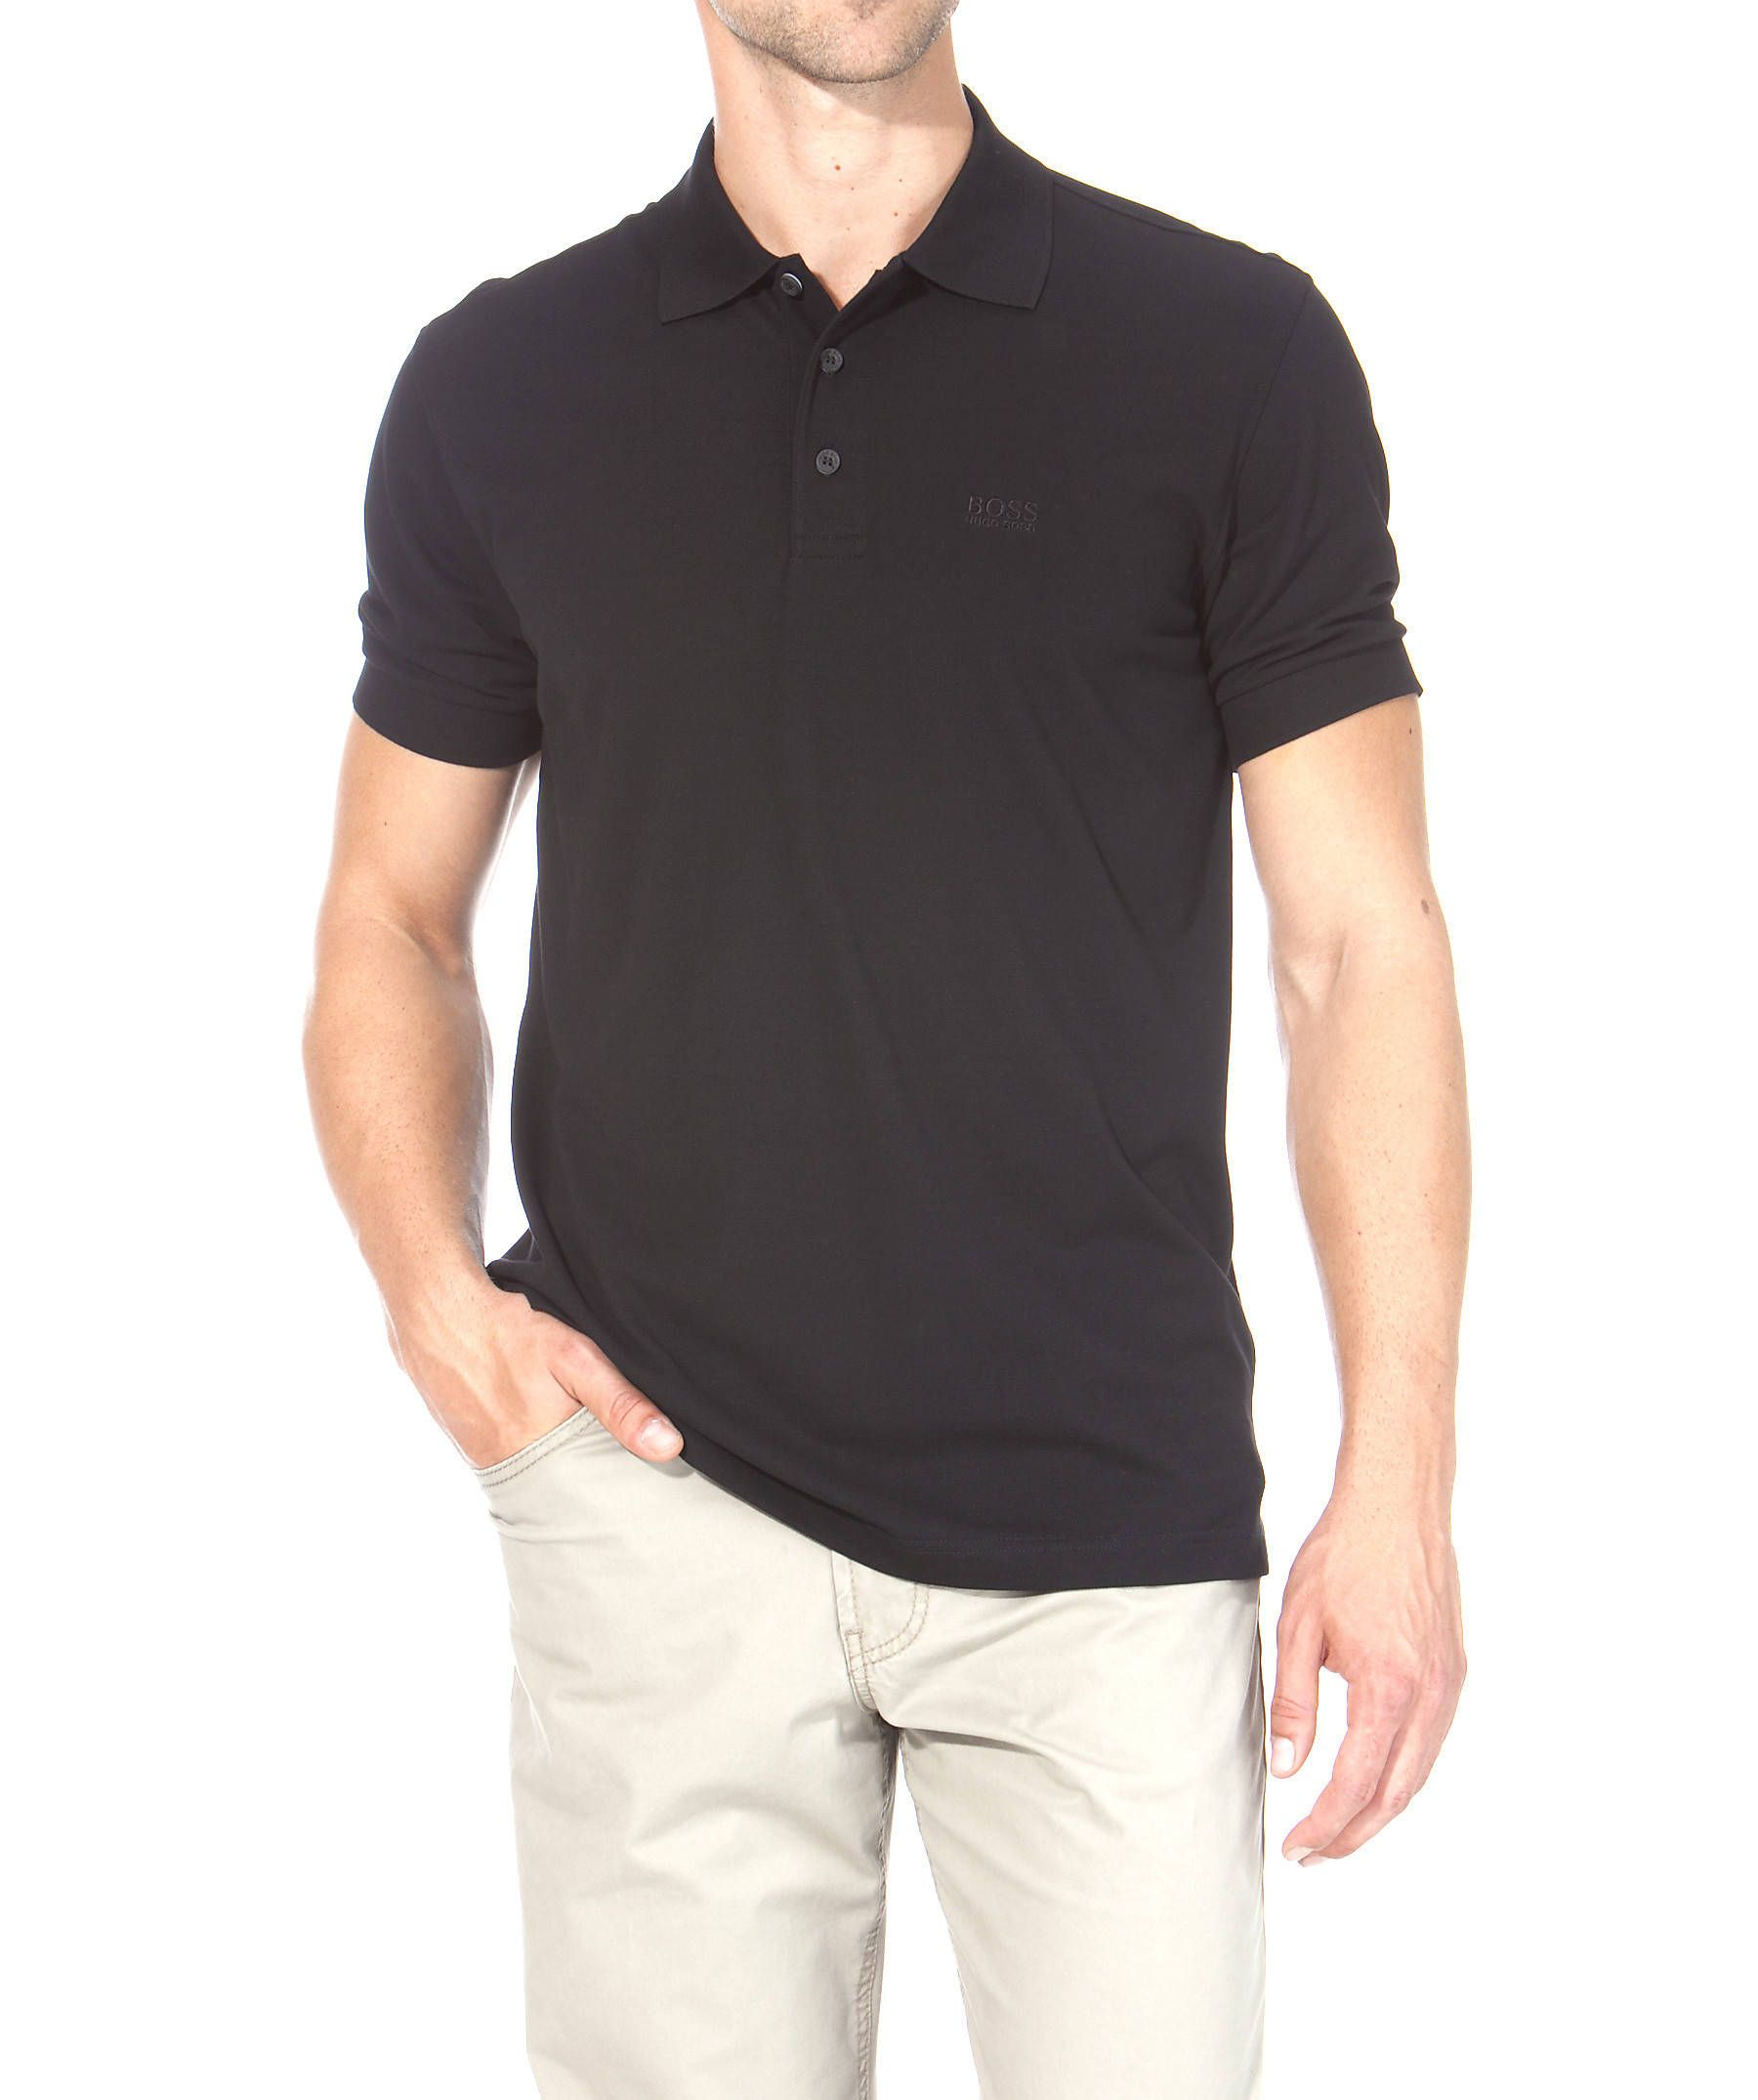 3856cd4169c34f Casual Boss Black Polo Shirt